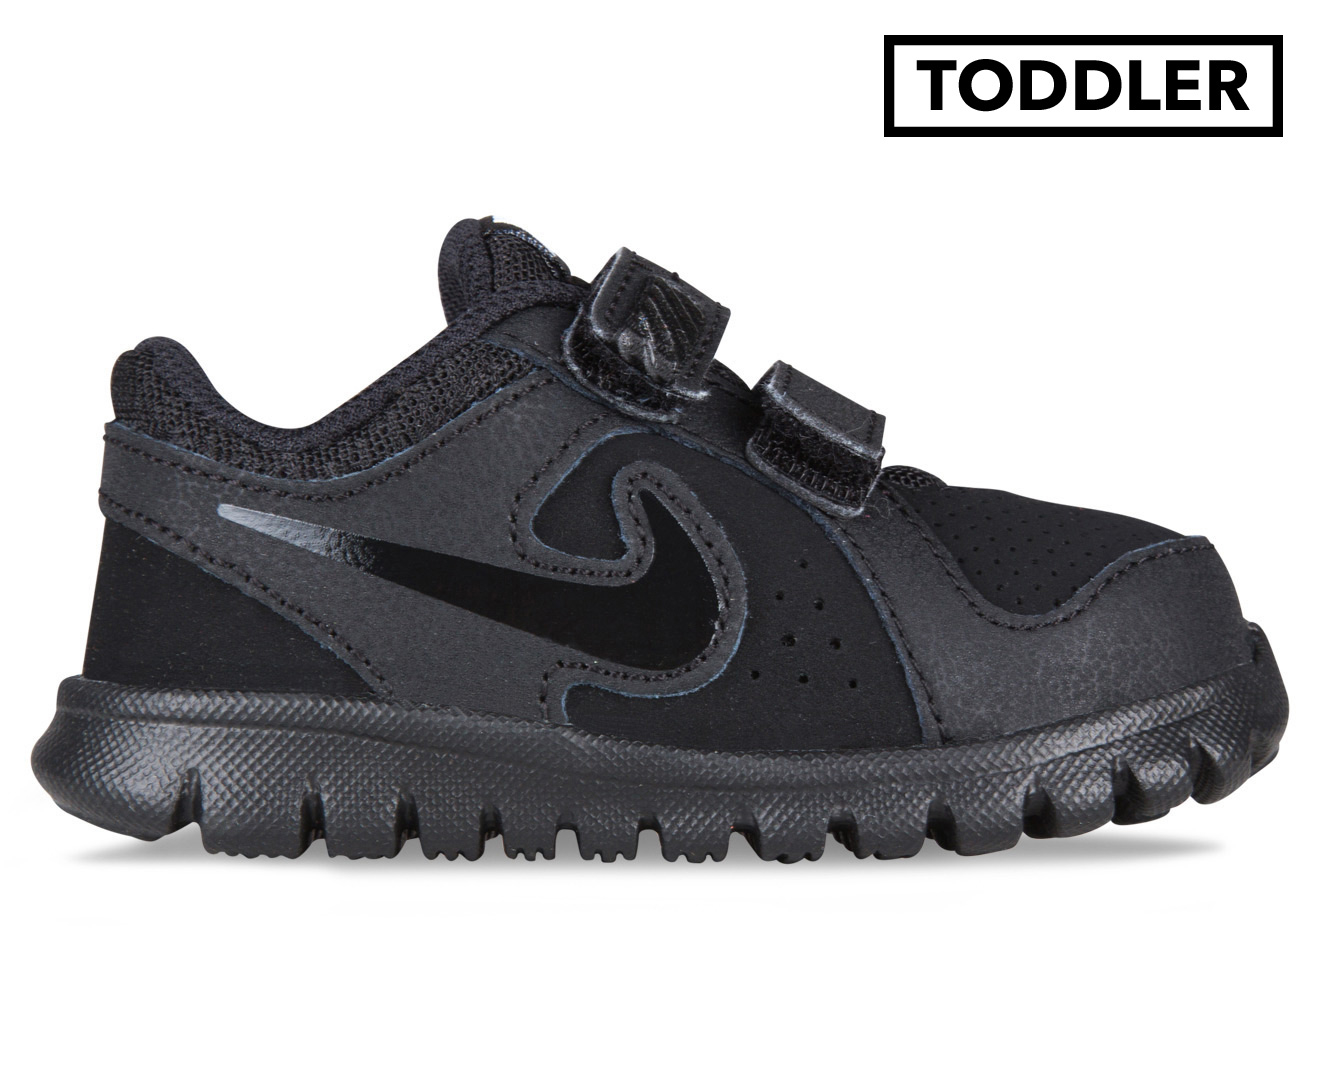 Nike Toddler Shoes Clearance Australia